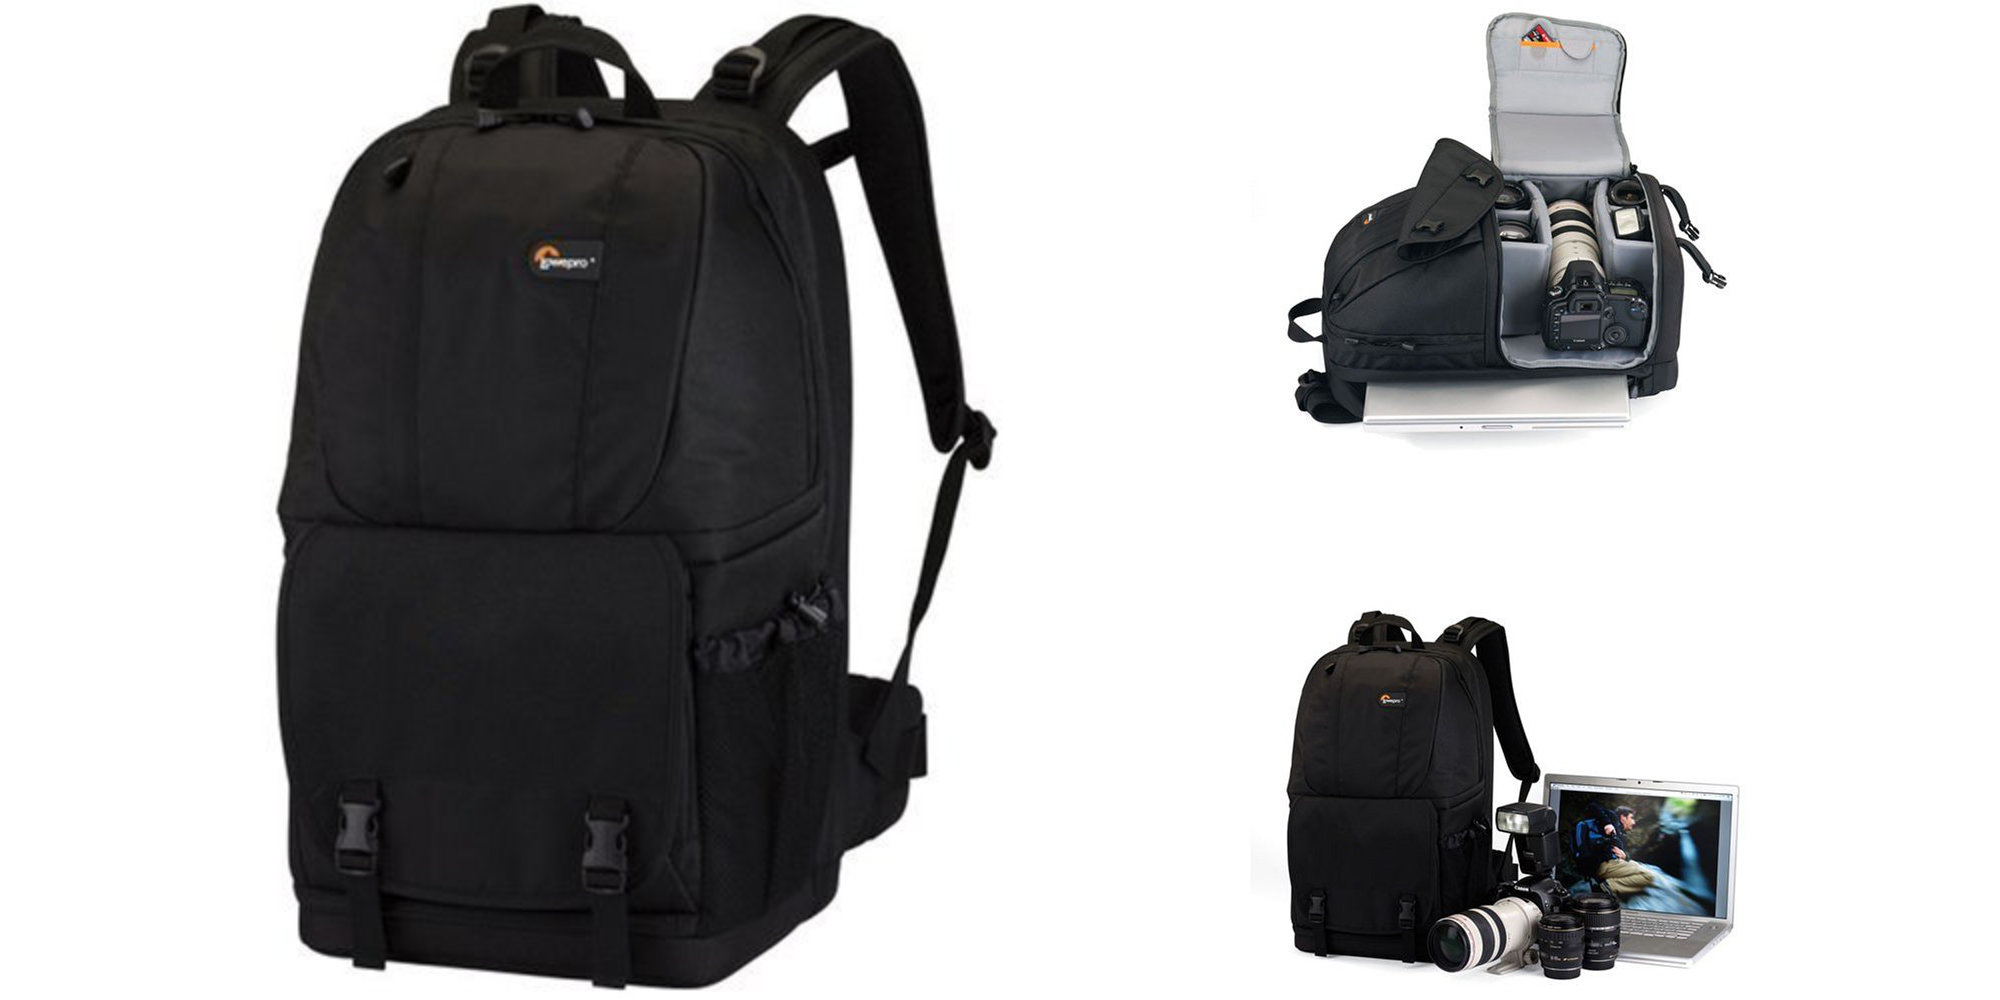 This Lowepro Backpack has room for a MacBook, DSLR, and multiple lenses: $35 (Reg. $80)